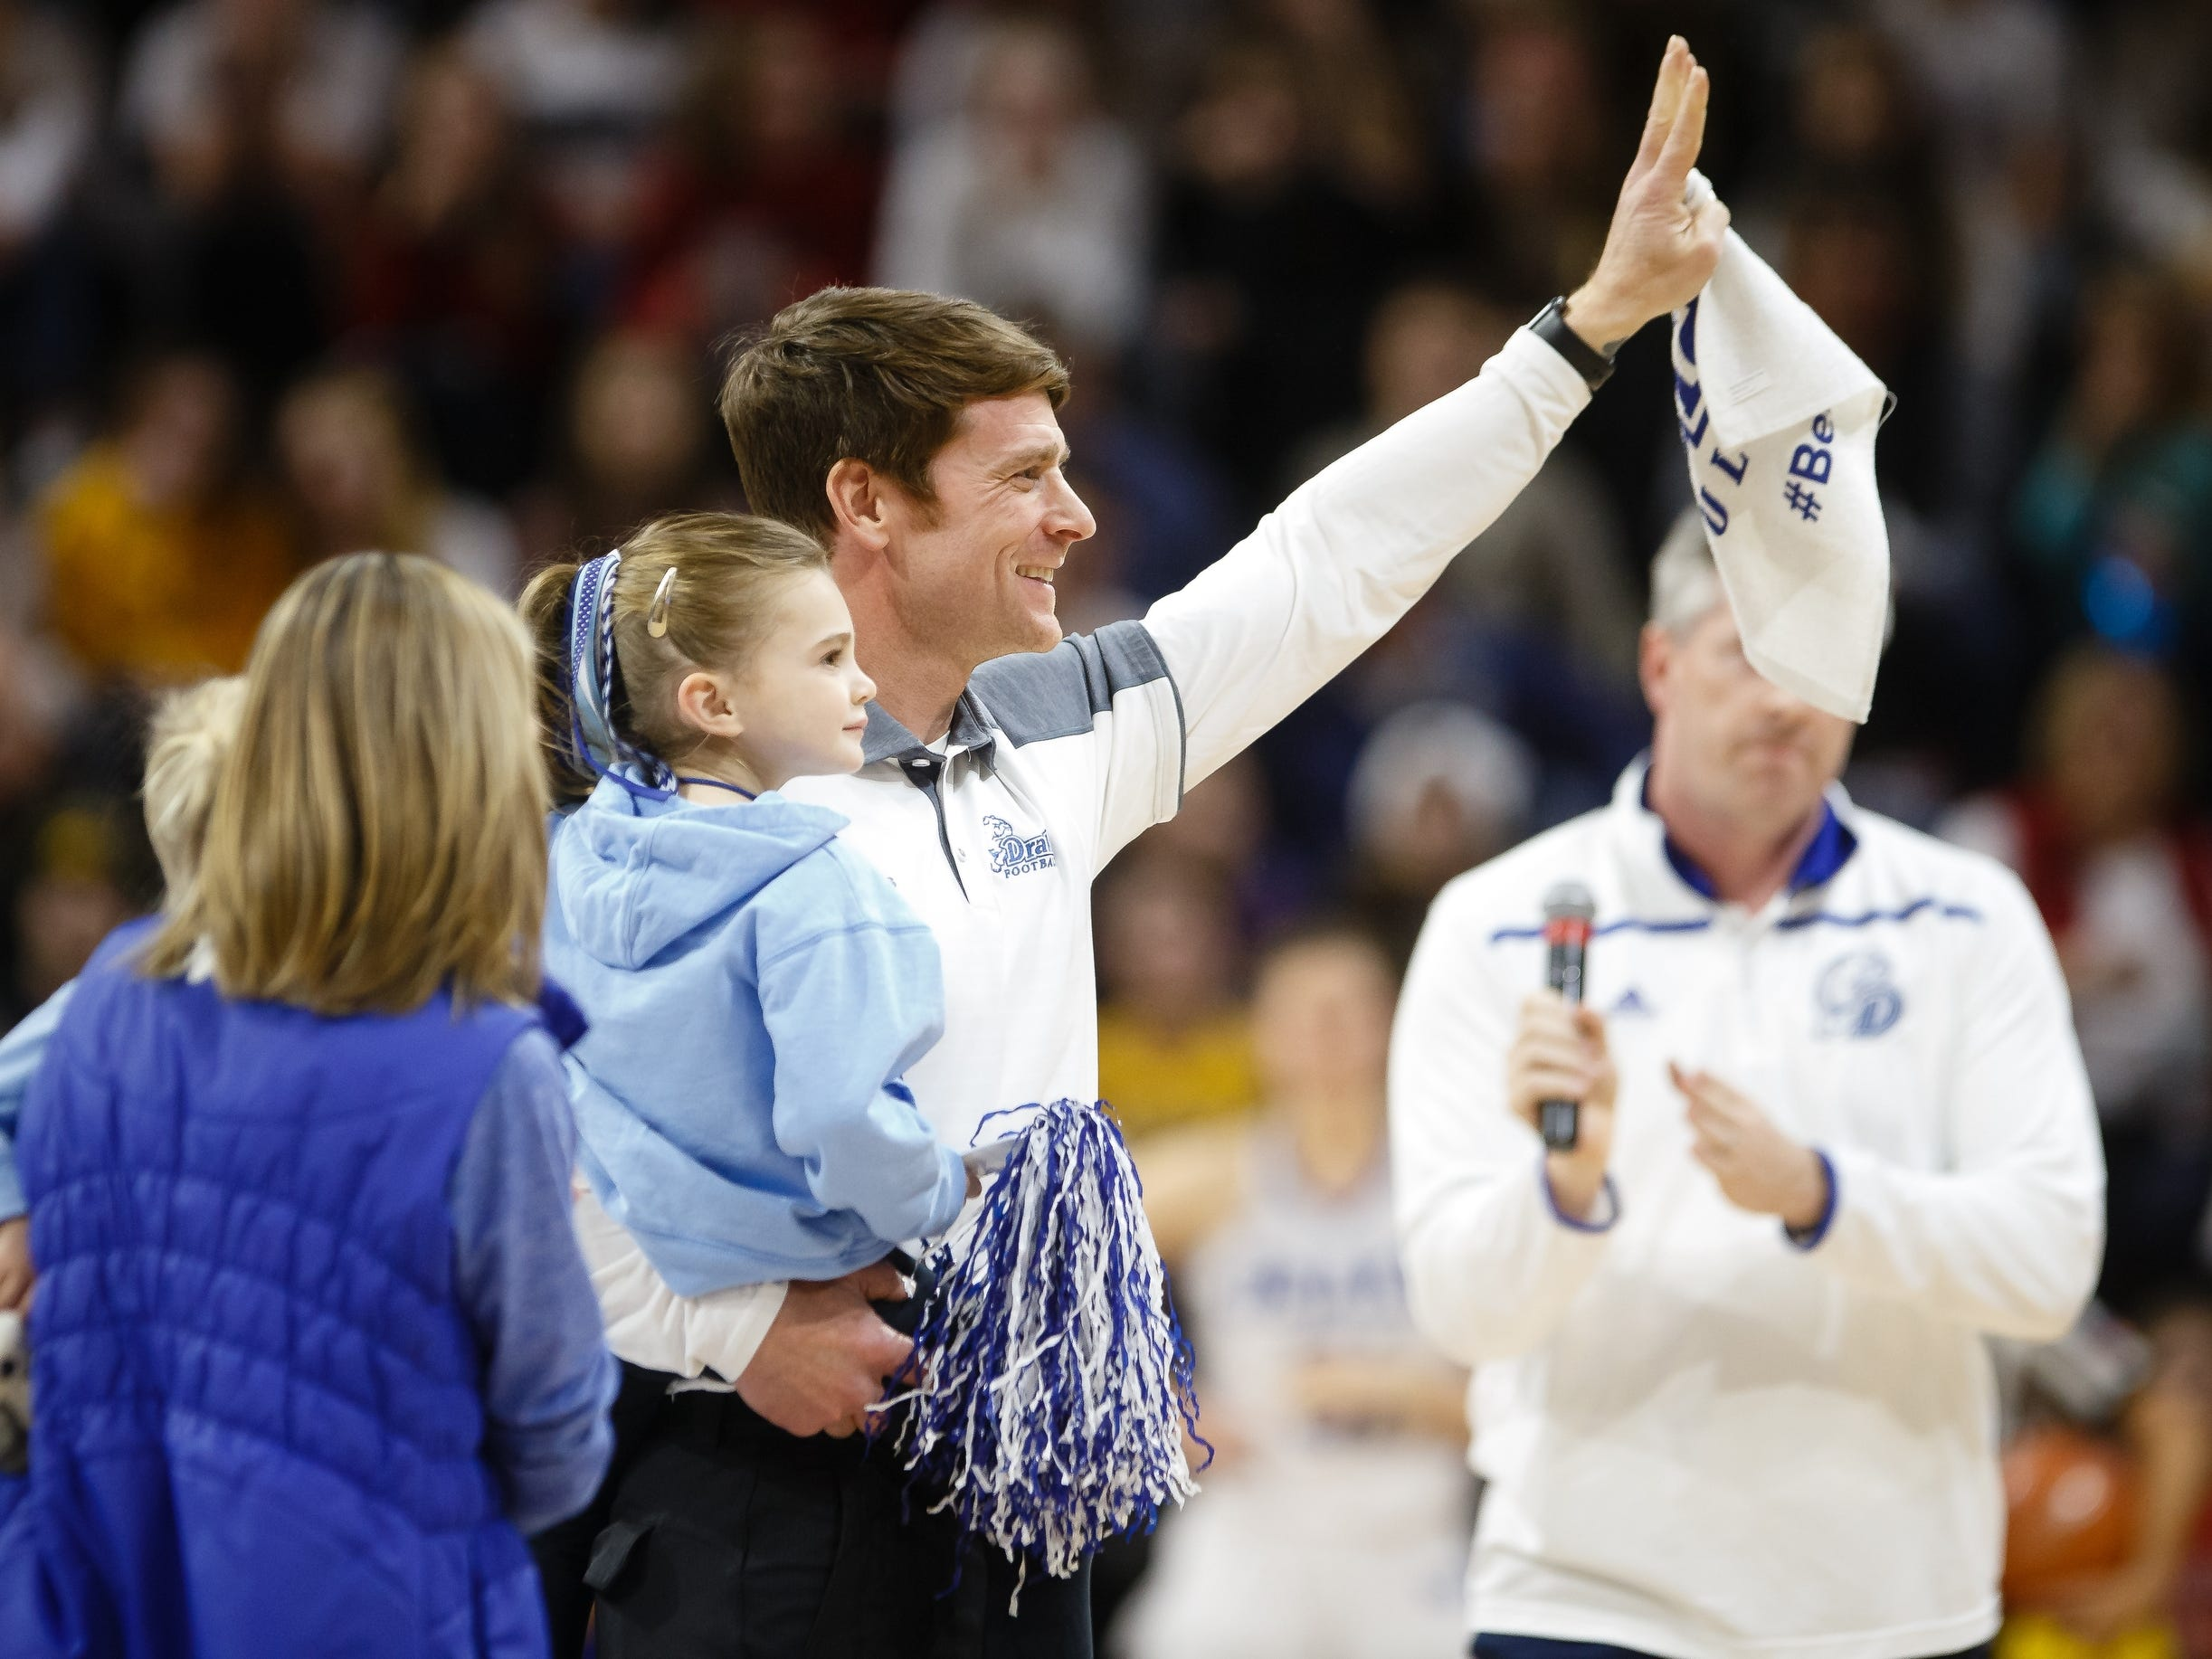 New Drake football head coach Todd Stepsis is introduced during the first quarter of Drake's women's basketball game on Friday, Dec. 21, 2018, in Des Moines. Drake takes a 45-43 lead into halftime.